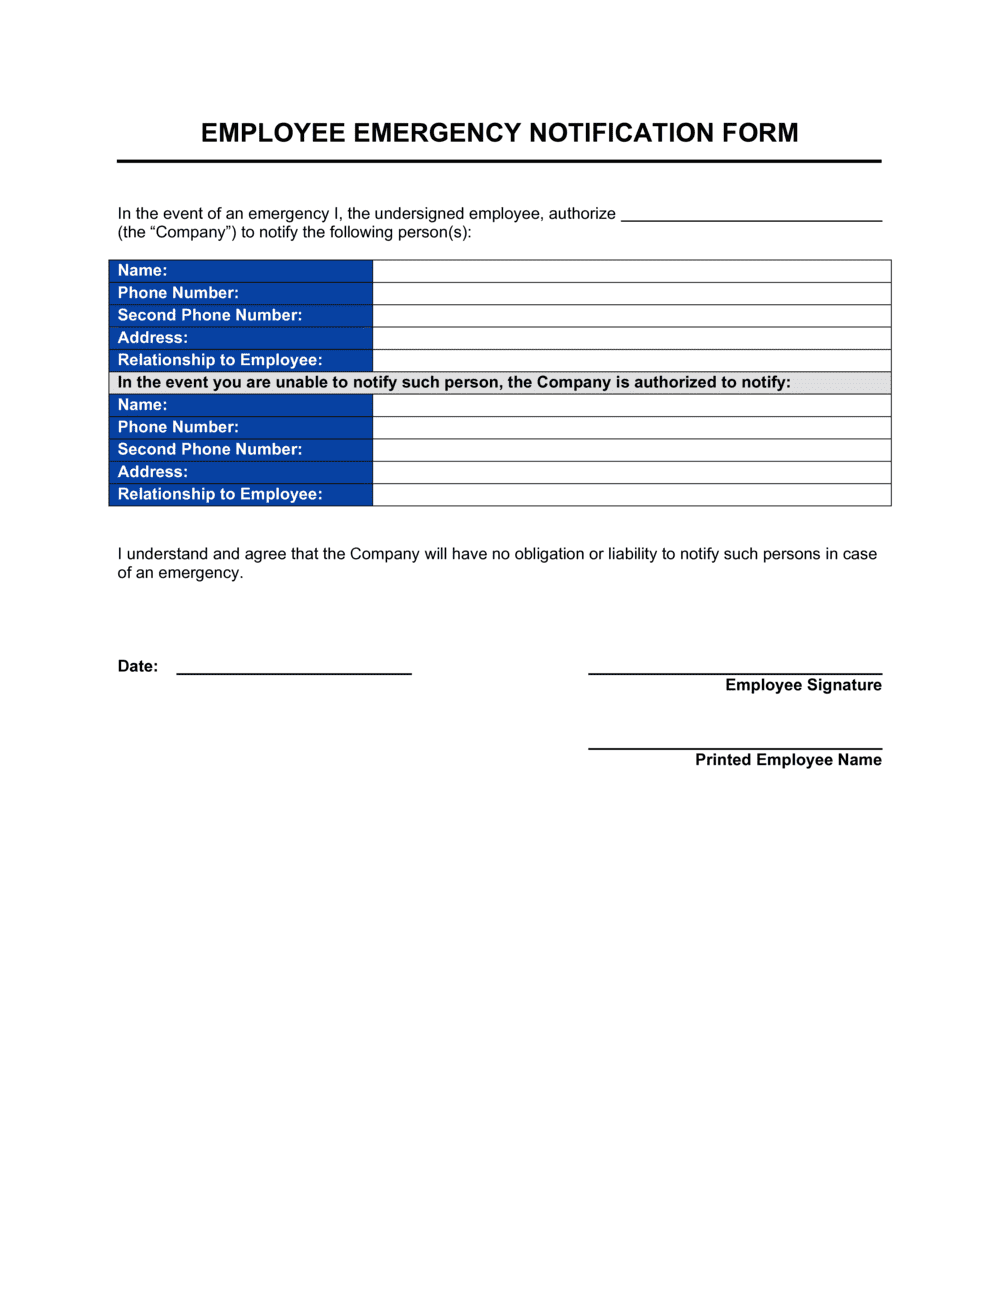 Business-in-a-Box's Employee Emergency Notification Form Template